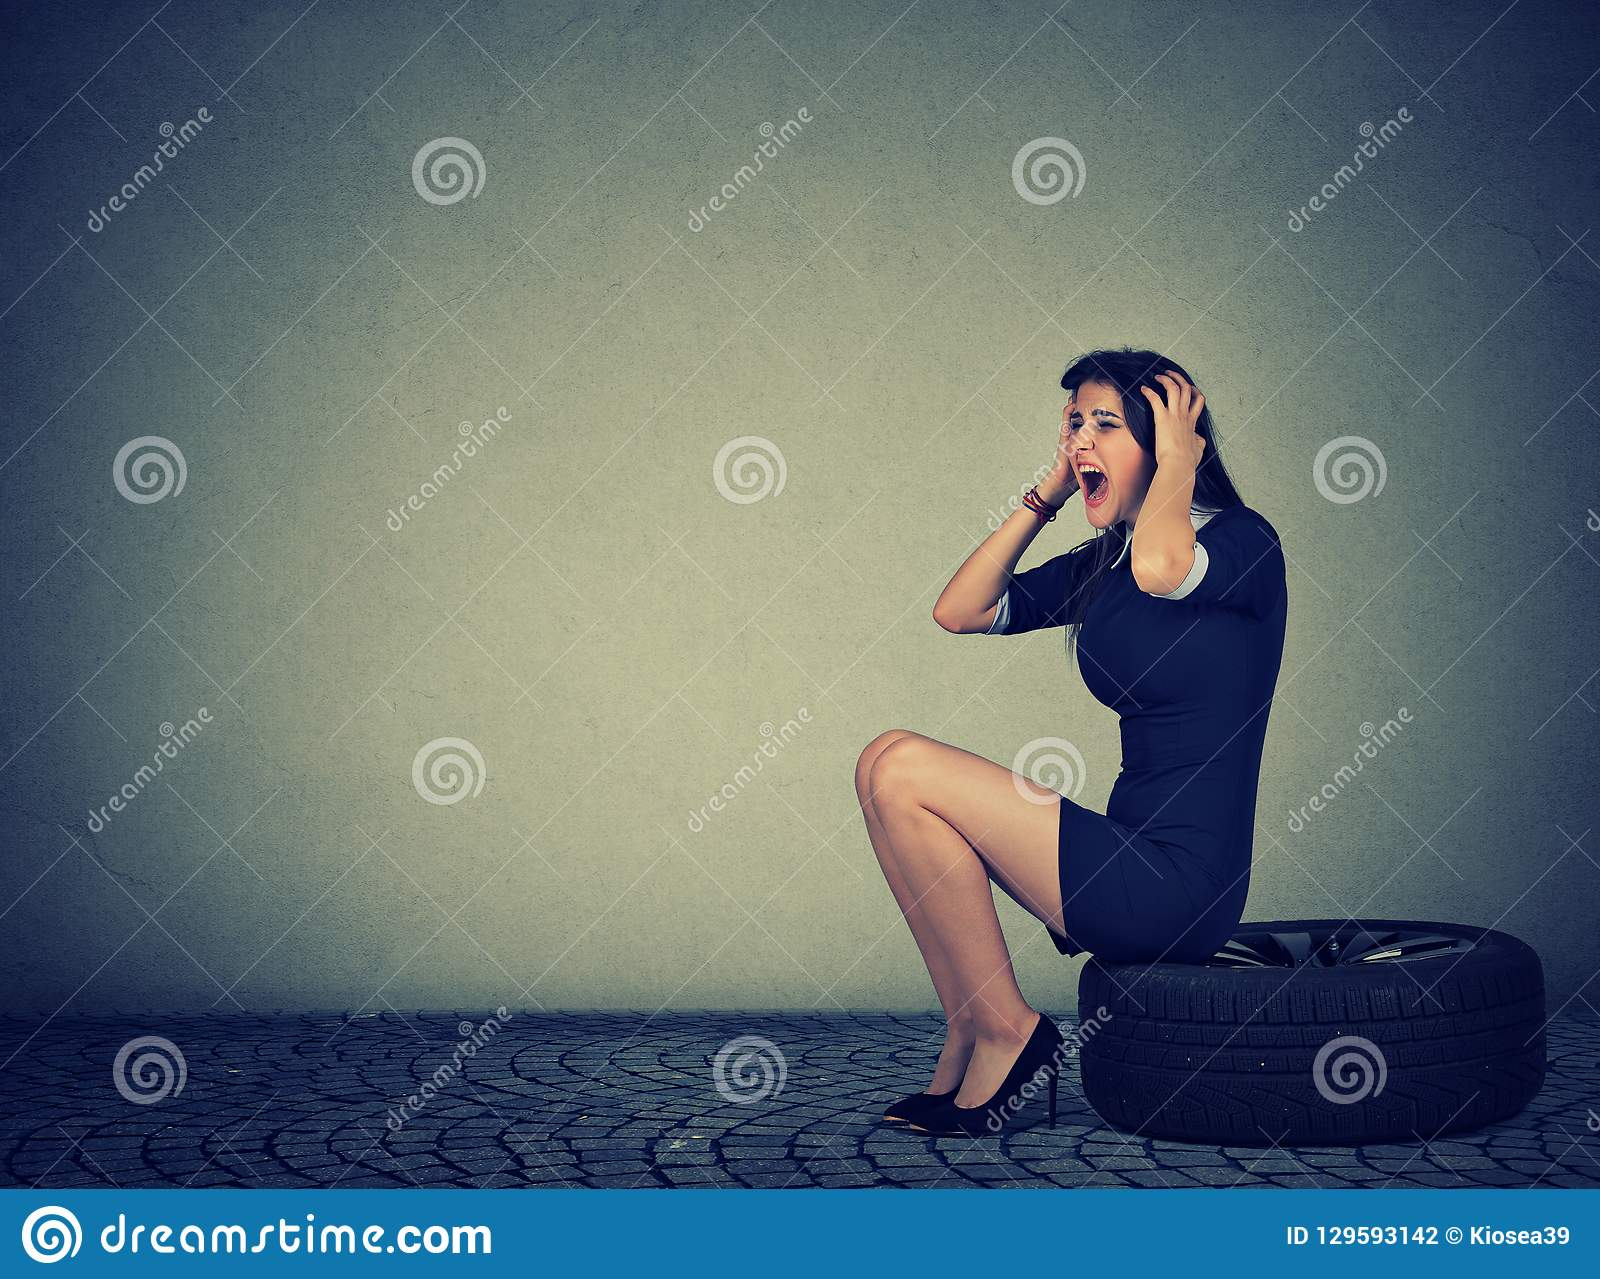 Stressful woman screaming while sitting on tire